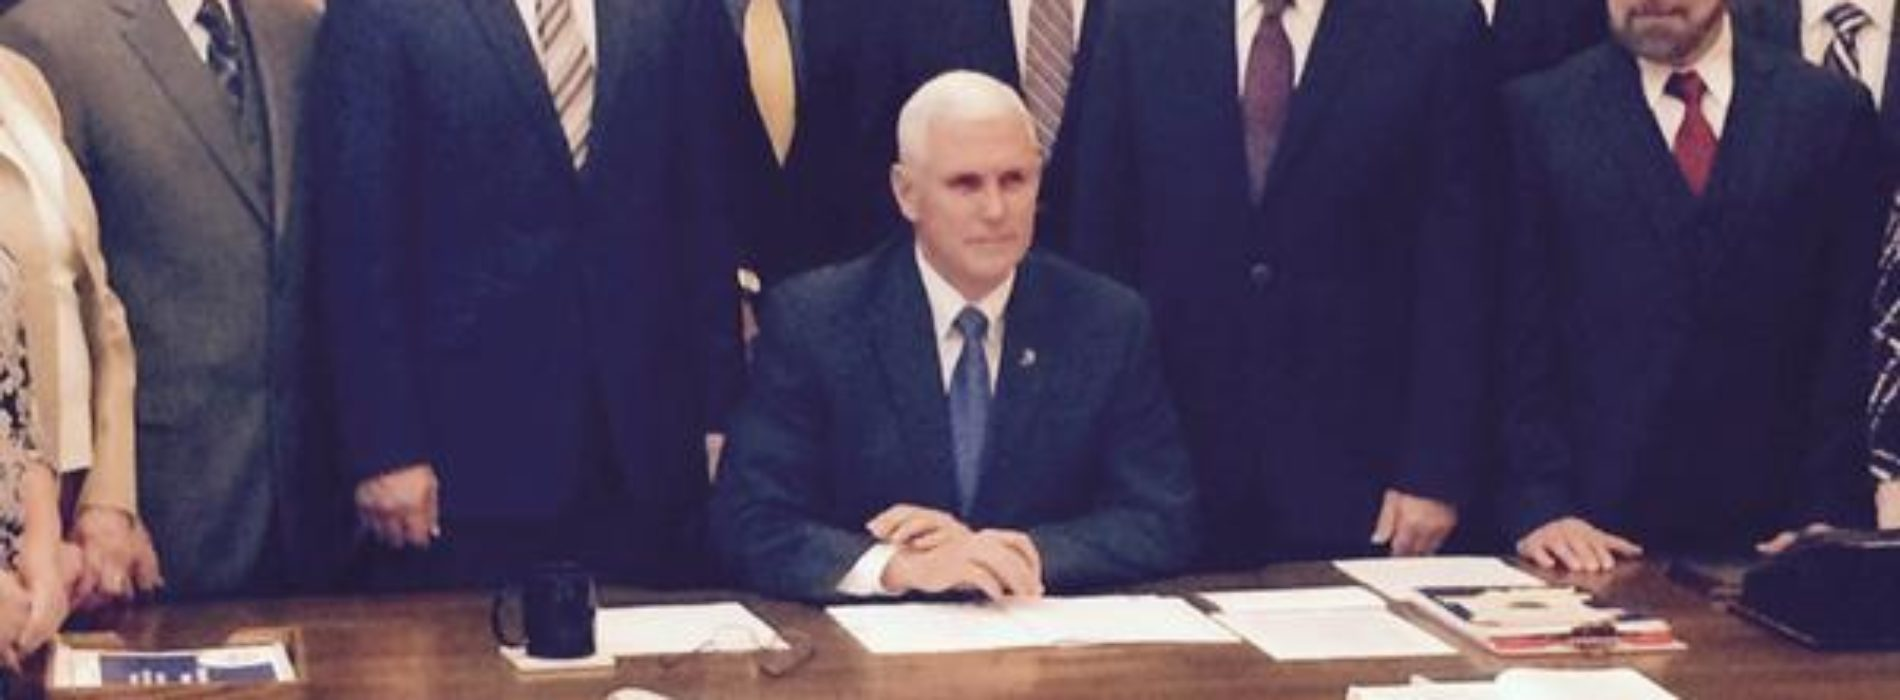 Indiana's Shadow Government; Holcomb's flights worrisome; and INDEMS